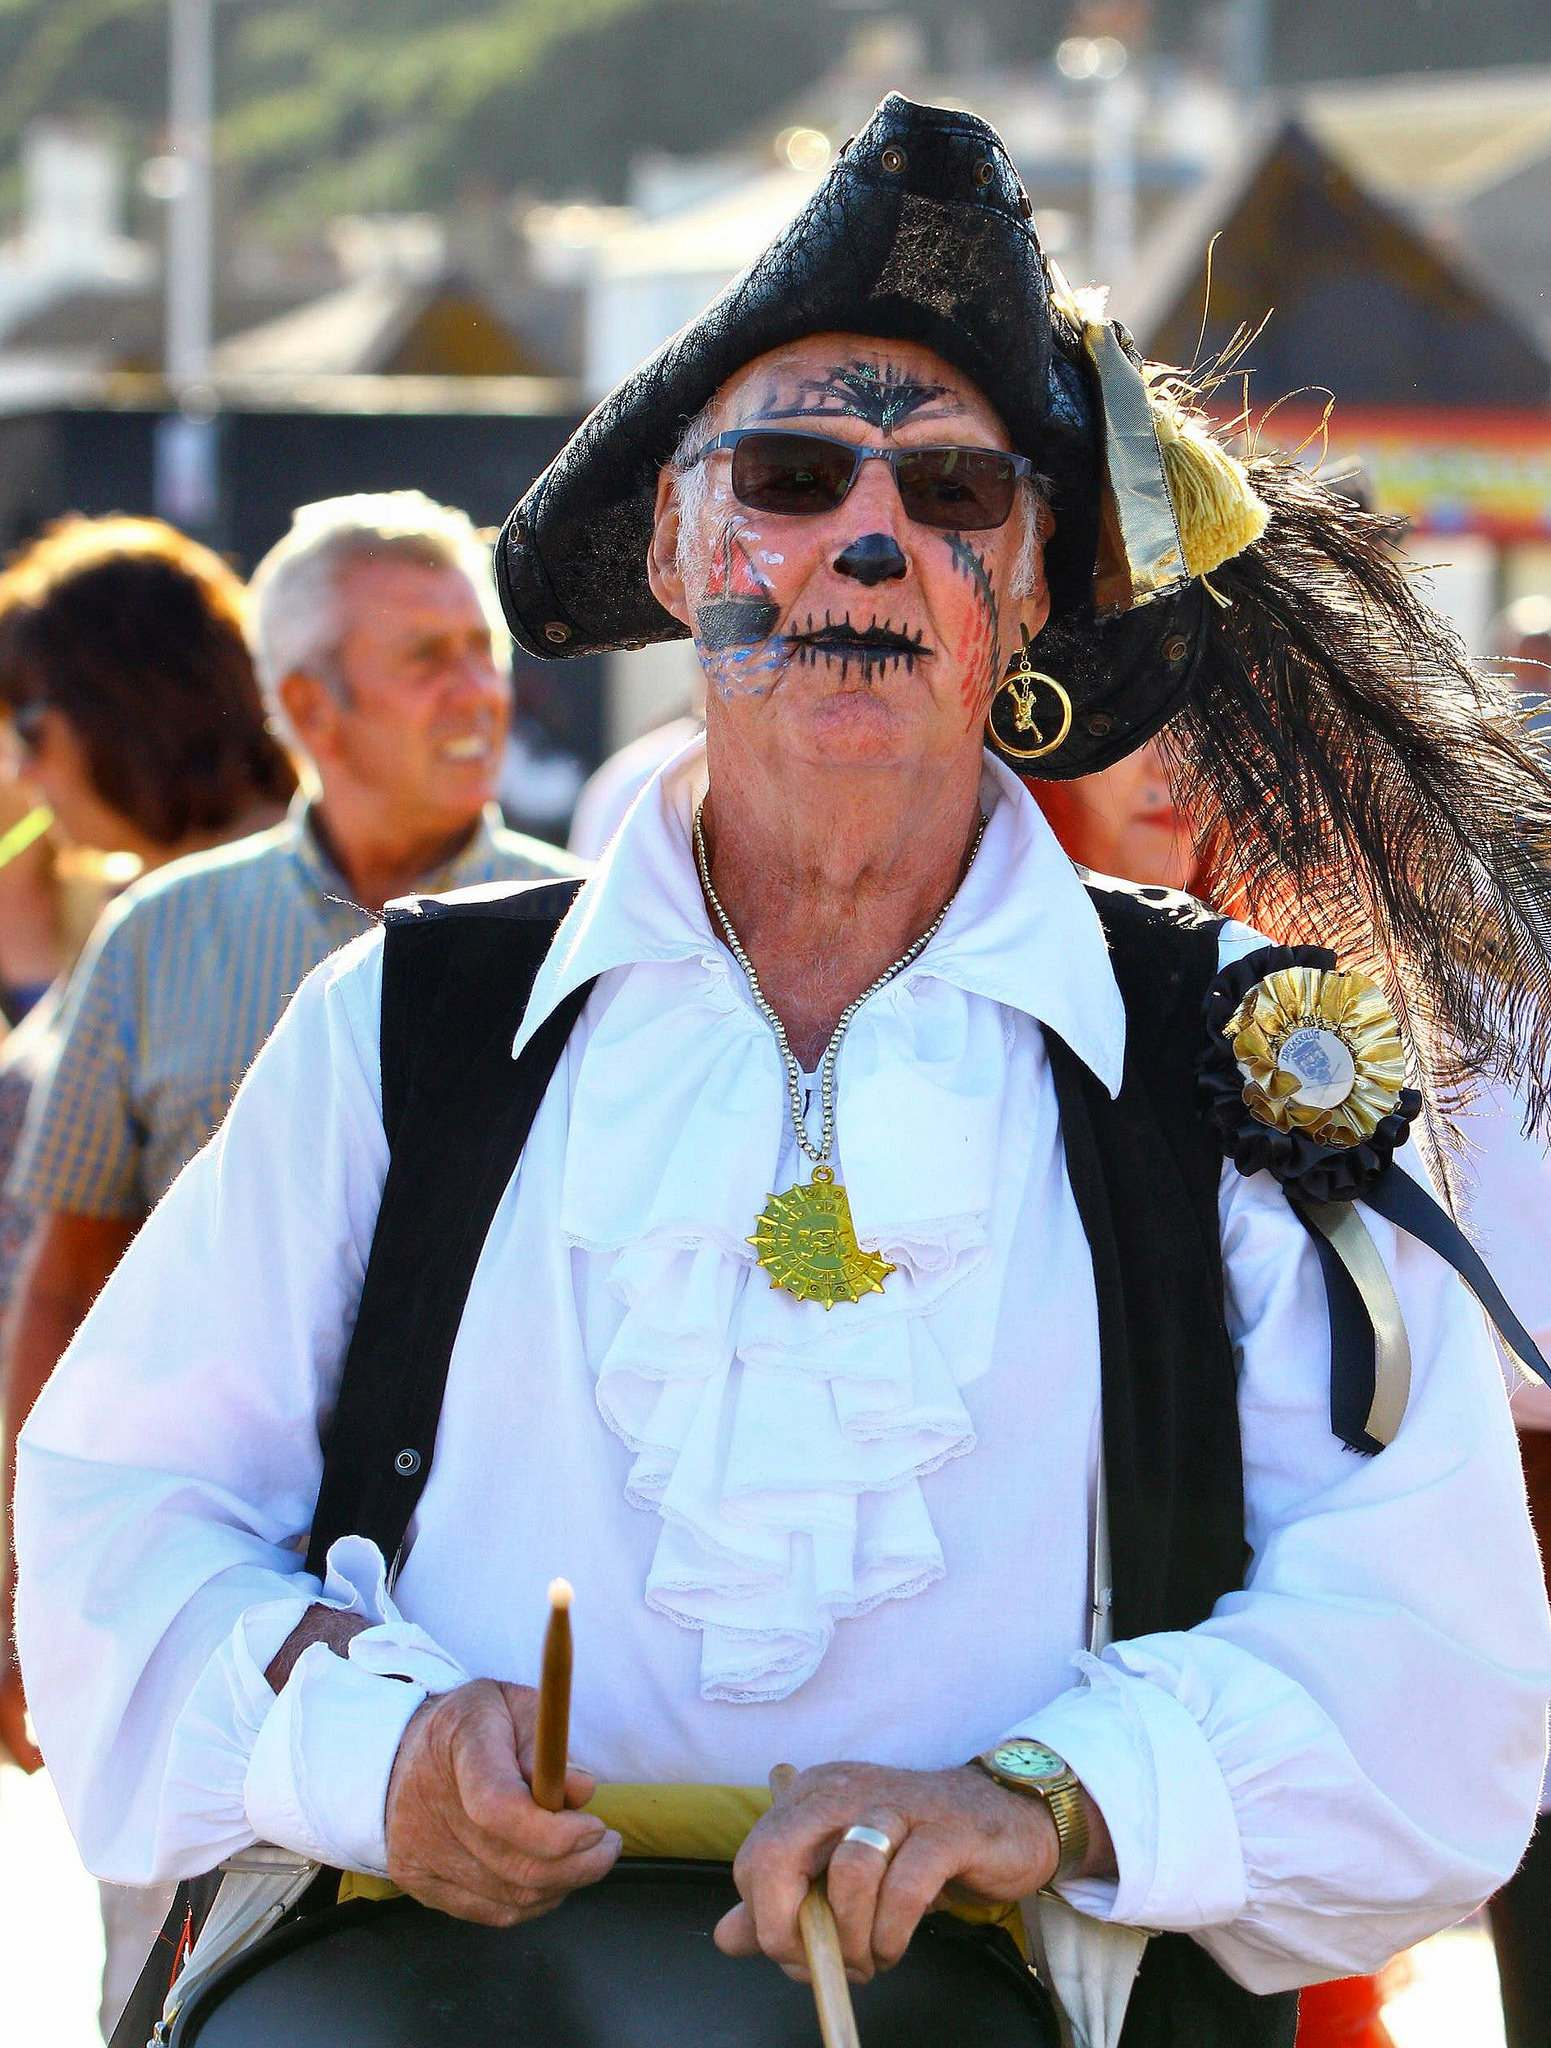 pirate 201610 Hastings Pirate Day 2016